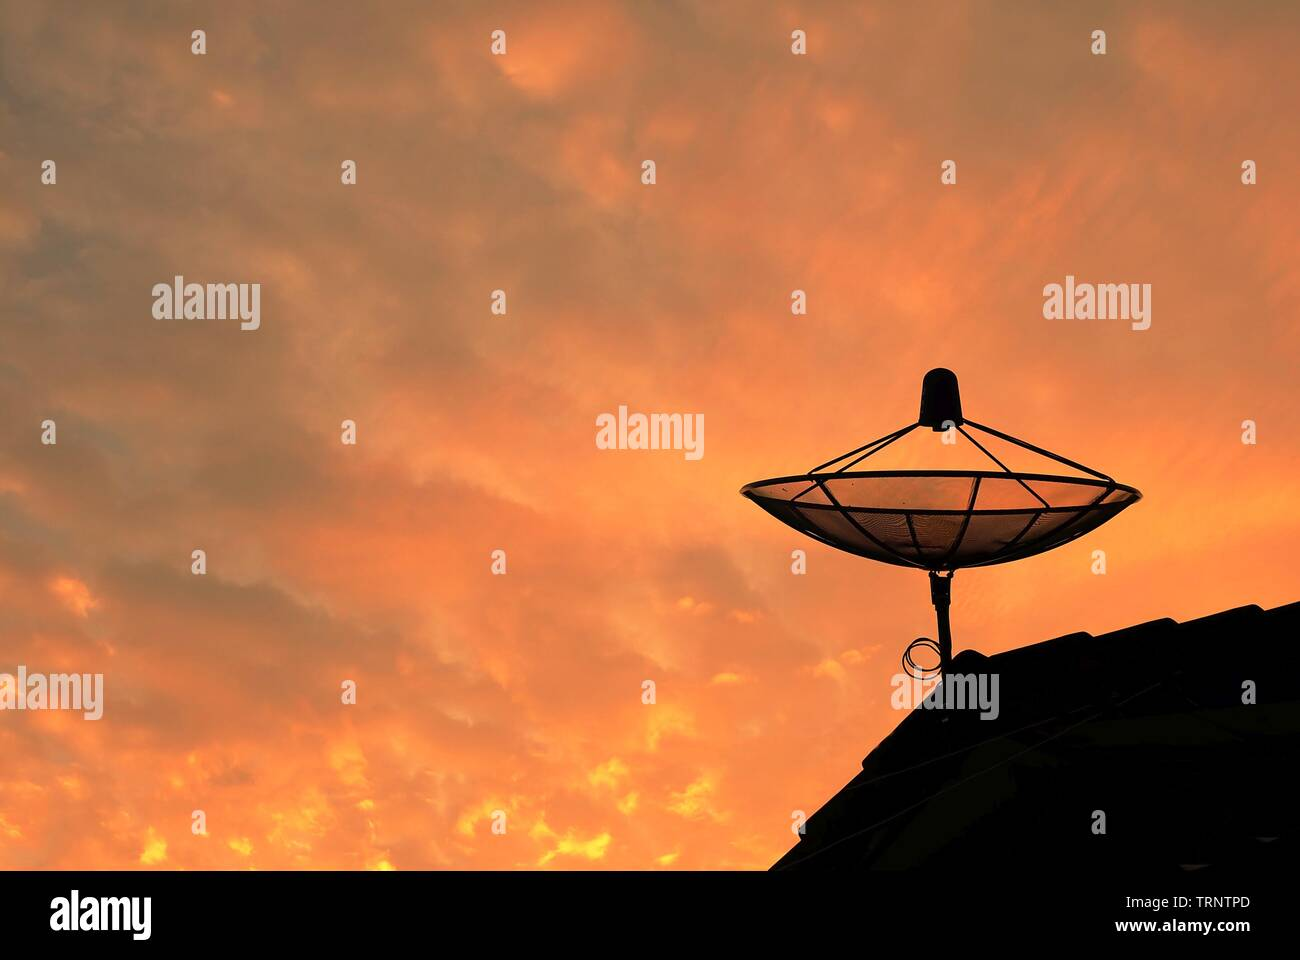 Parabola Satellite Dish Antenna Receiver Against on Blue Sky for Communication and Media Industry, Symbolizing Global Communications. - Stock Image